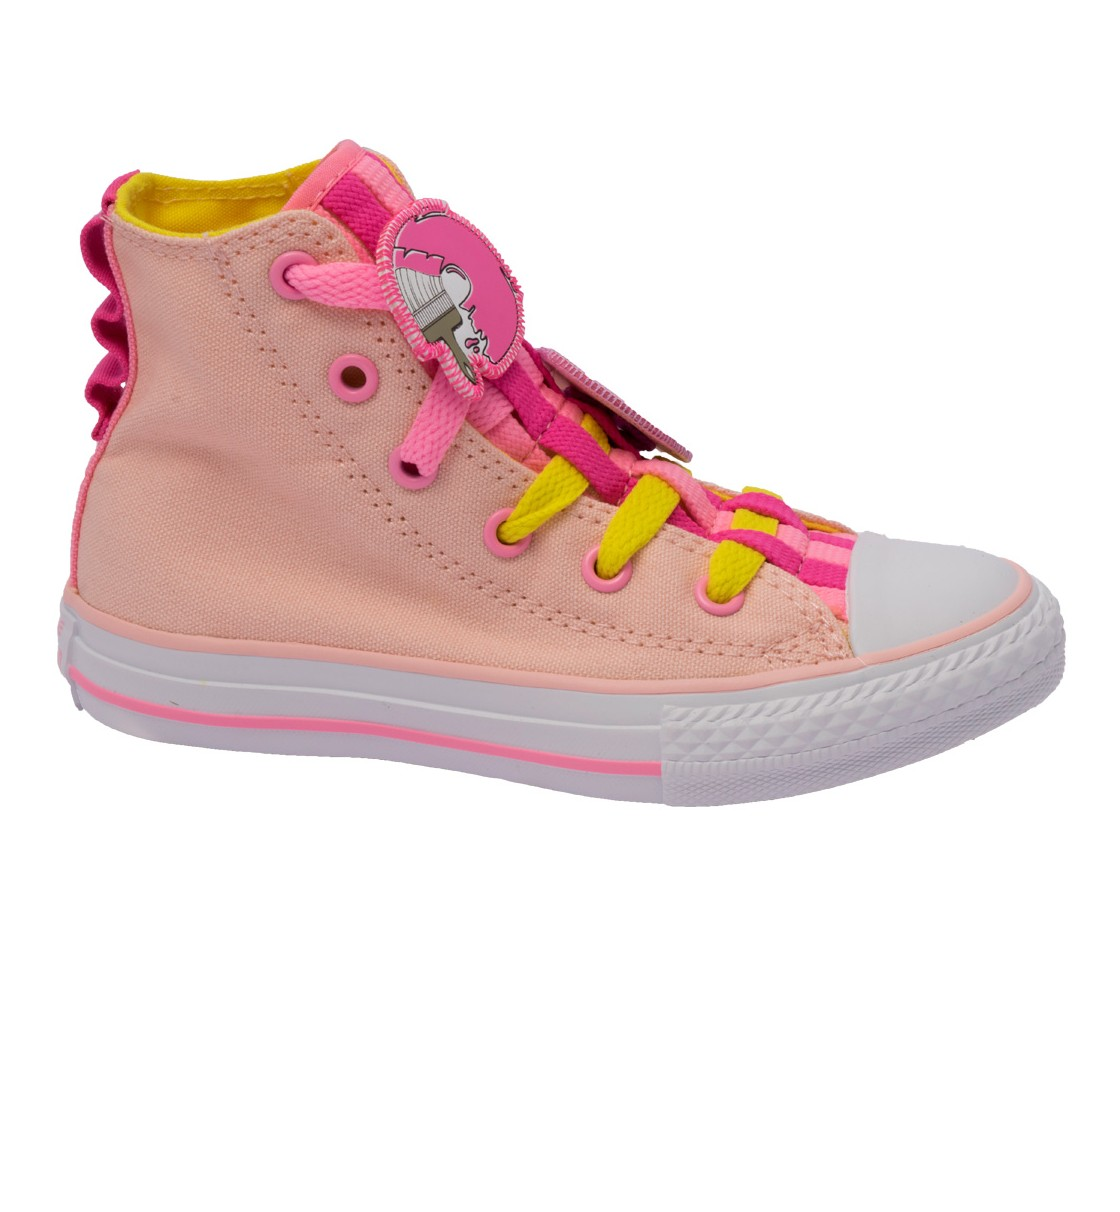 Converse Παιδικό Παπούτσι Μόδας Chuck Taylor All Star Loophole 656047C